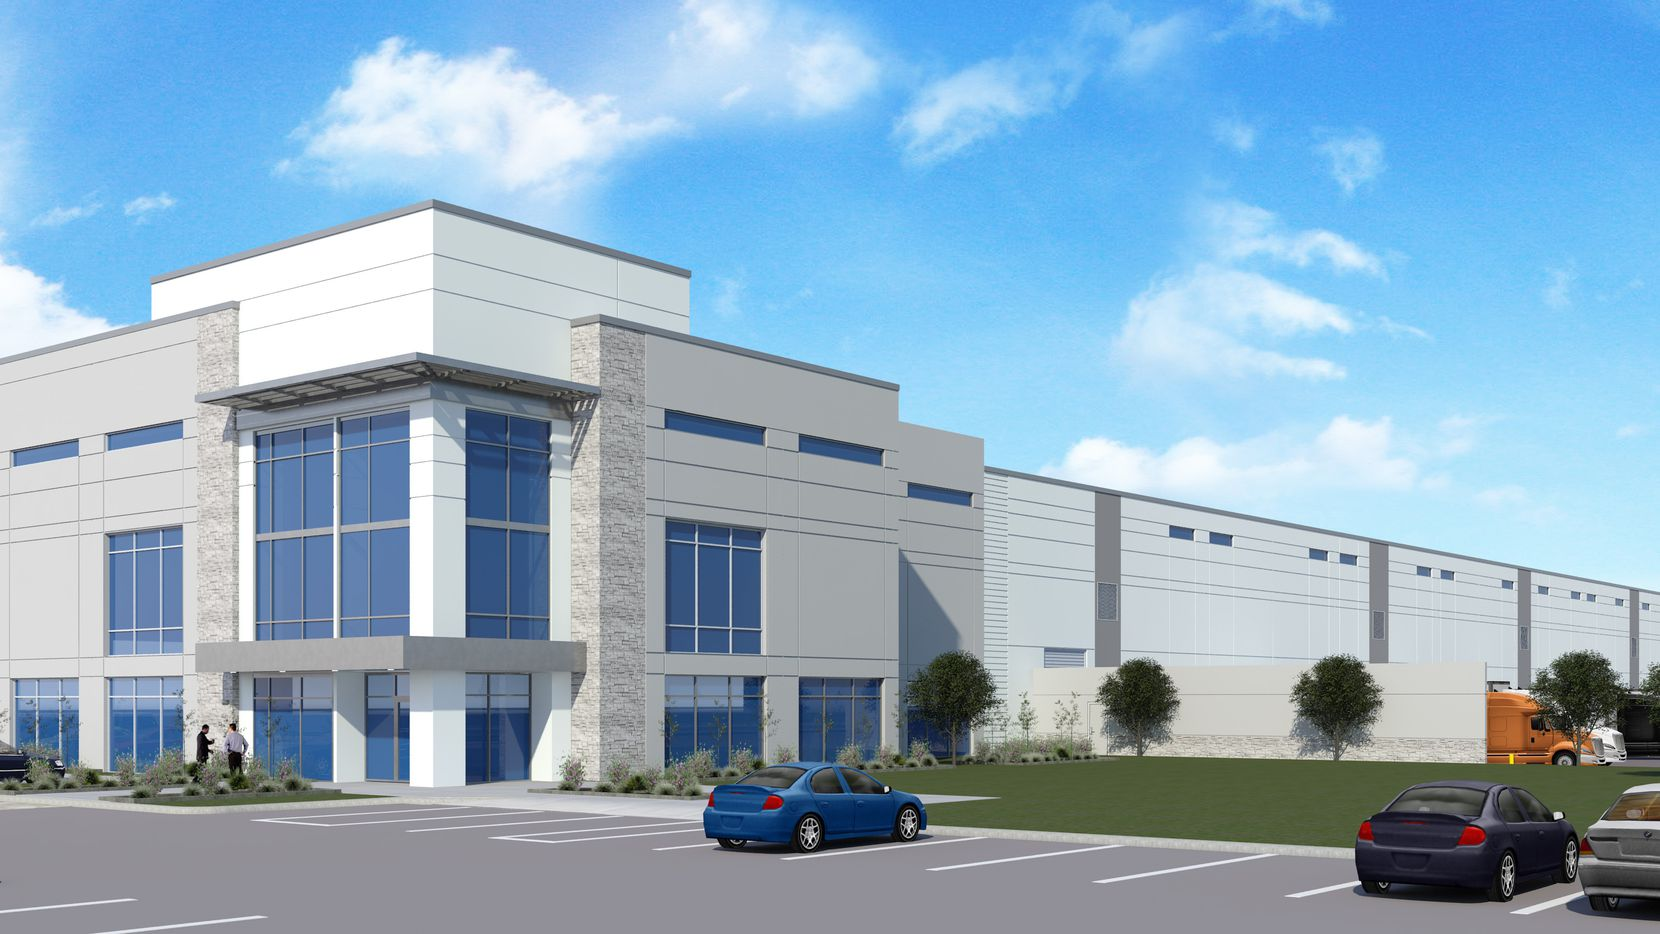 Almost 15 million square feet of warehouse space is under construction in North Texas.